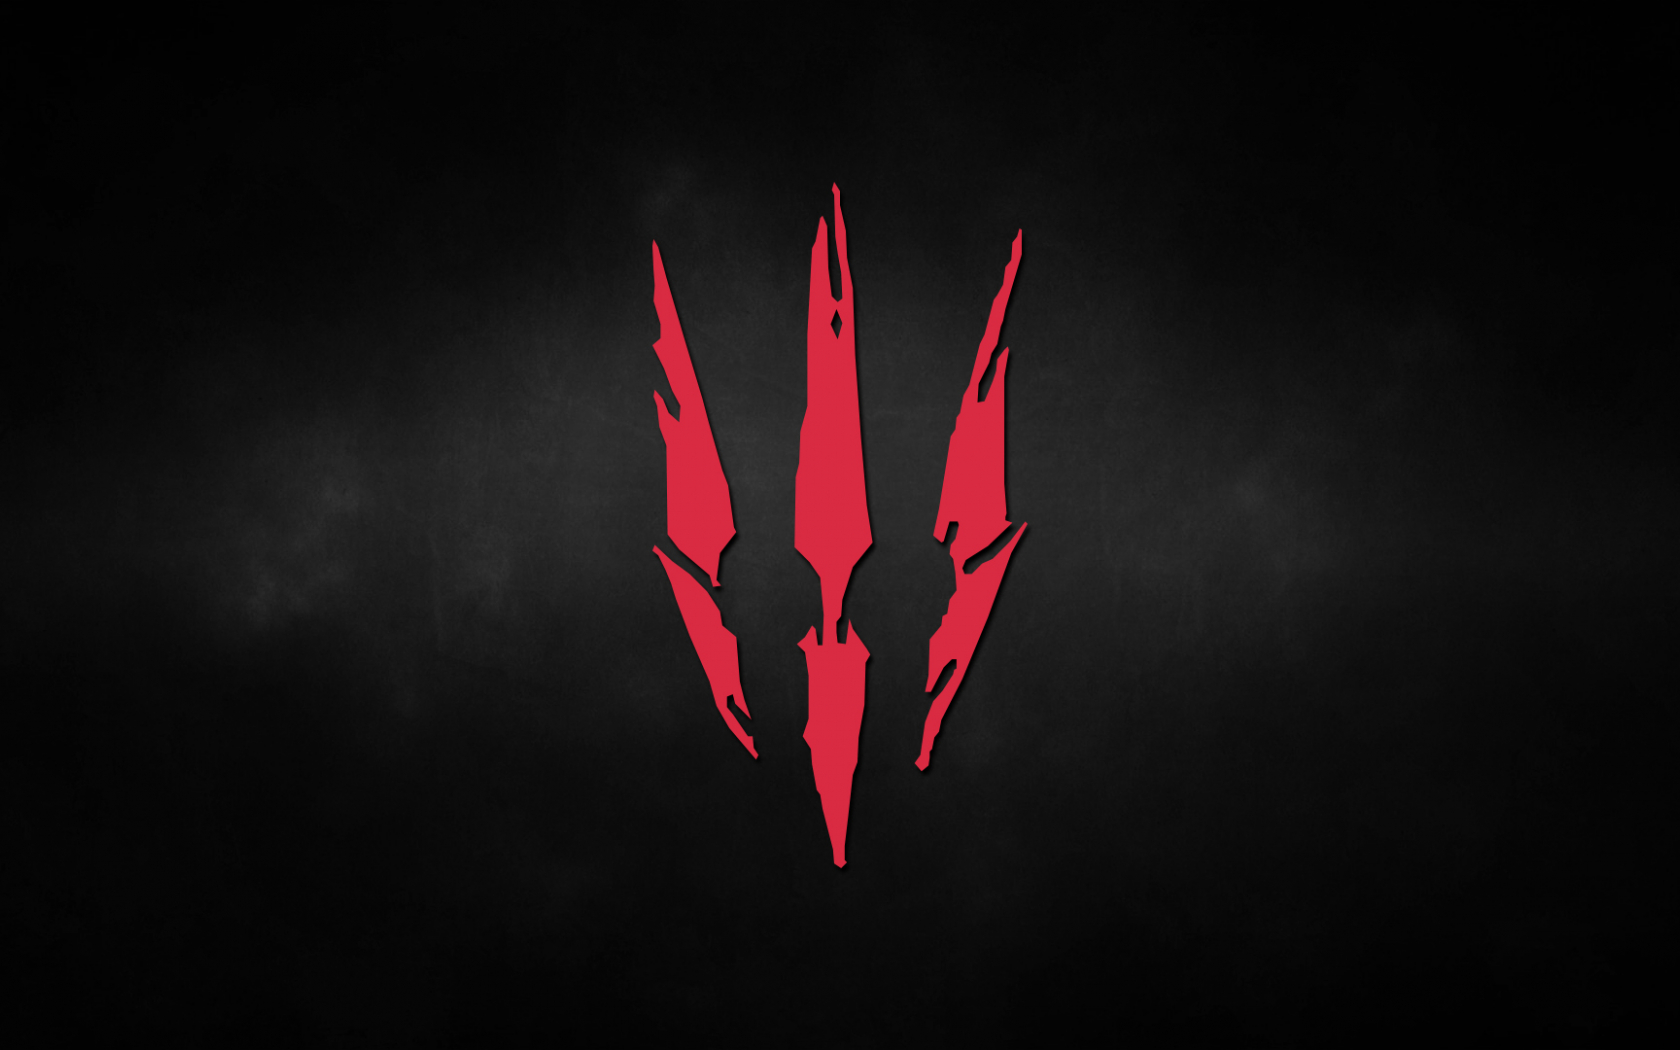 Free Download Daily Hd Wallpaper The Witcher 3 New Logo 1920x1080 1920x1080 For Your Desktop Mobile Tablet Explore 48 Witcher 3 Hd Wallpaper Witcher 3 Wallpaper 1920x1080 Witcher Wild Hunt Wallpaper The Witcher 3 Wallpaper